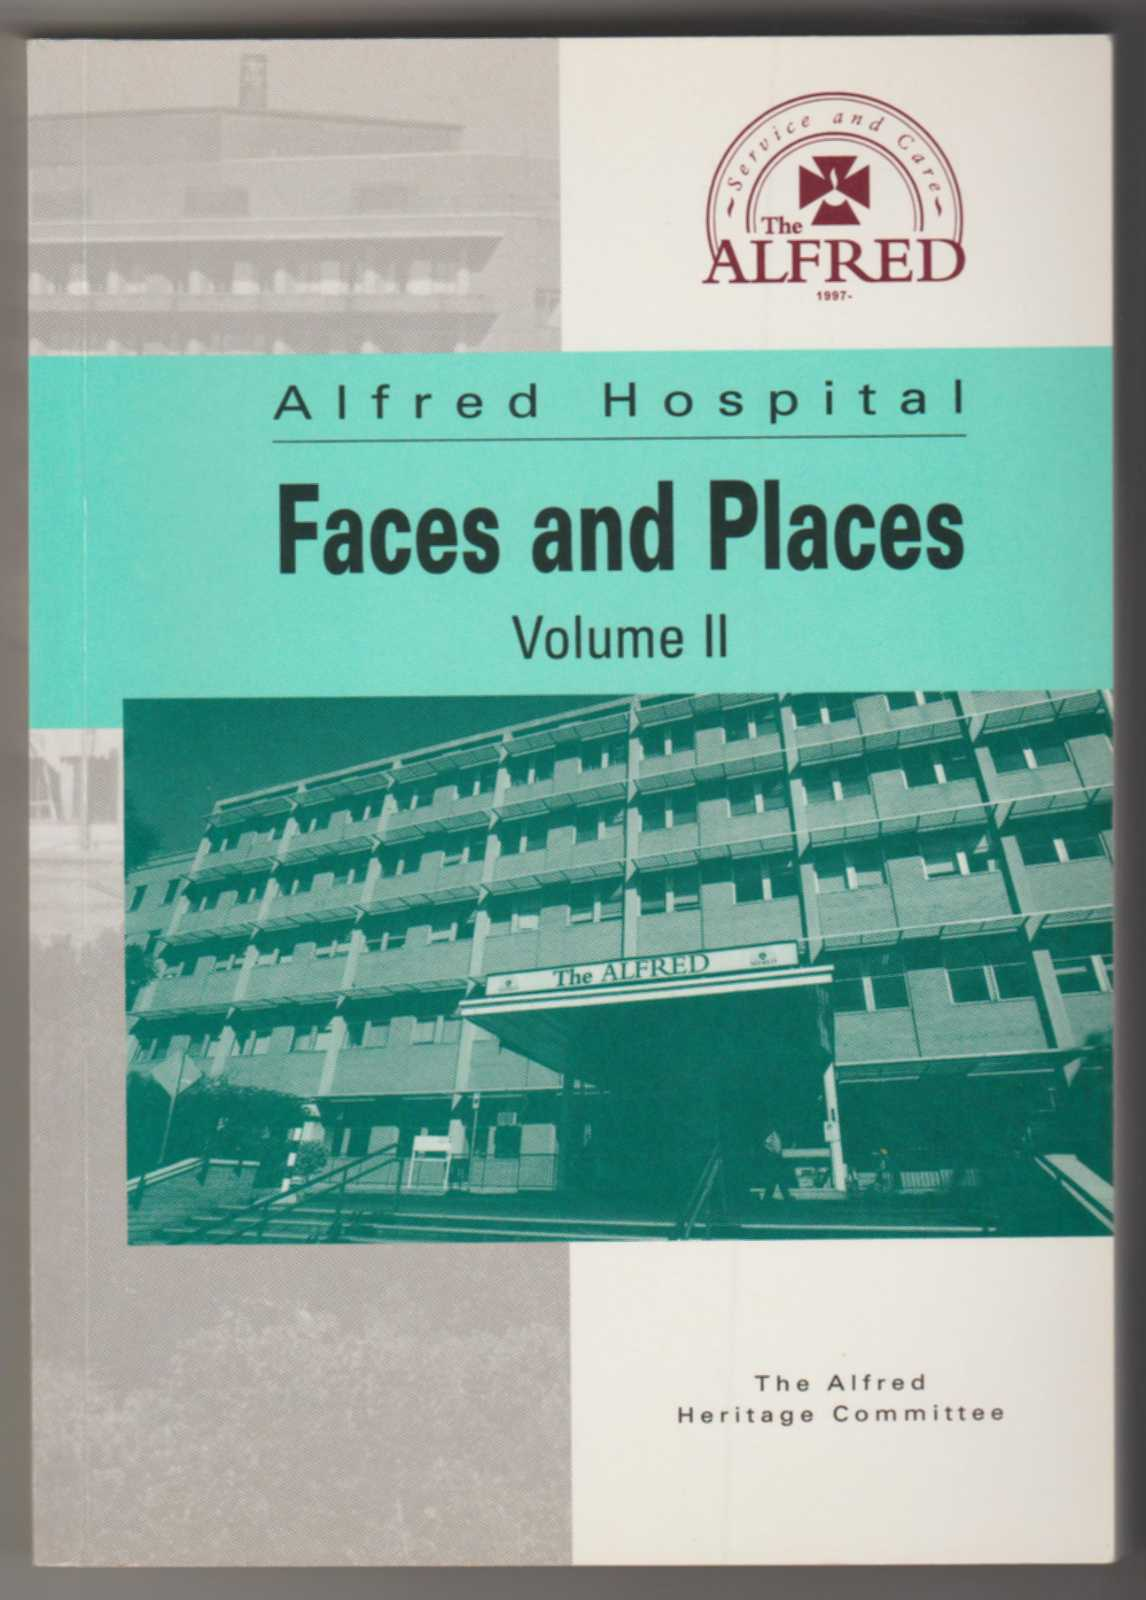 Image for ALFRED HOSPITAL: Faces and Places. Volume II